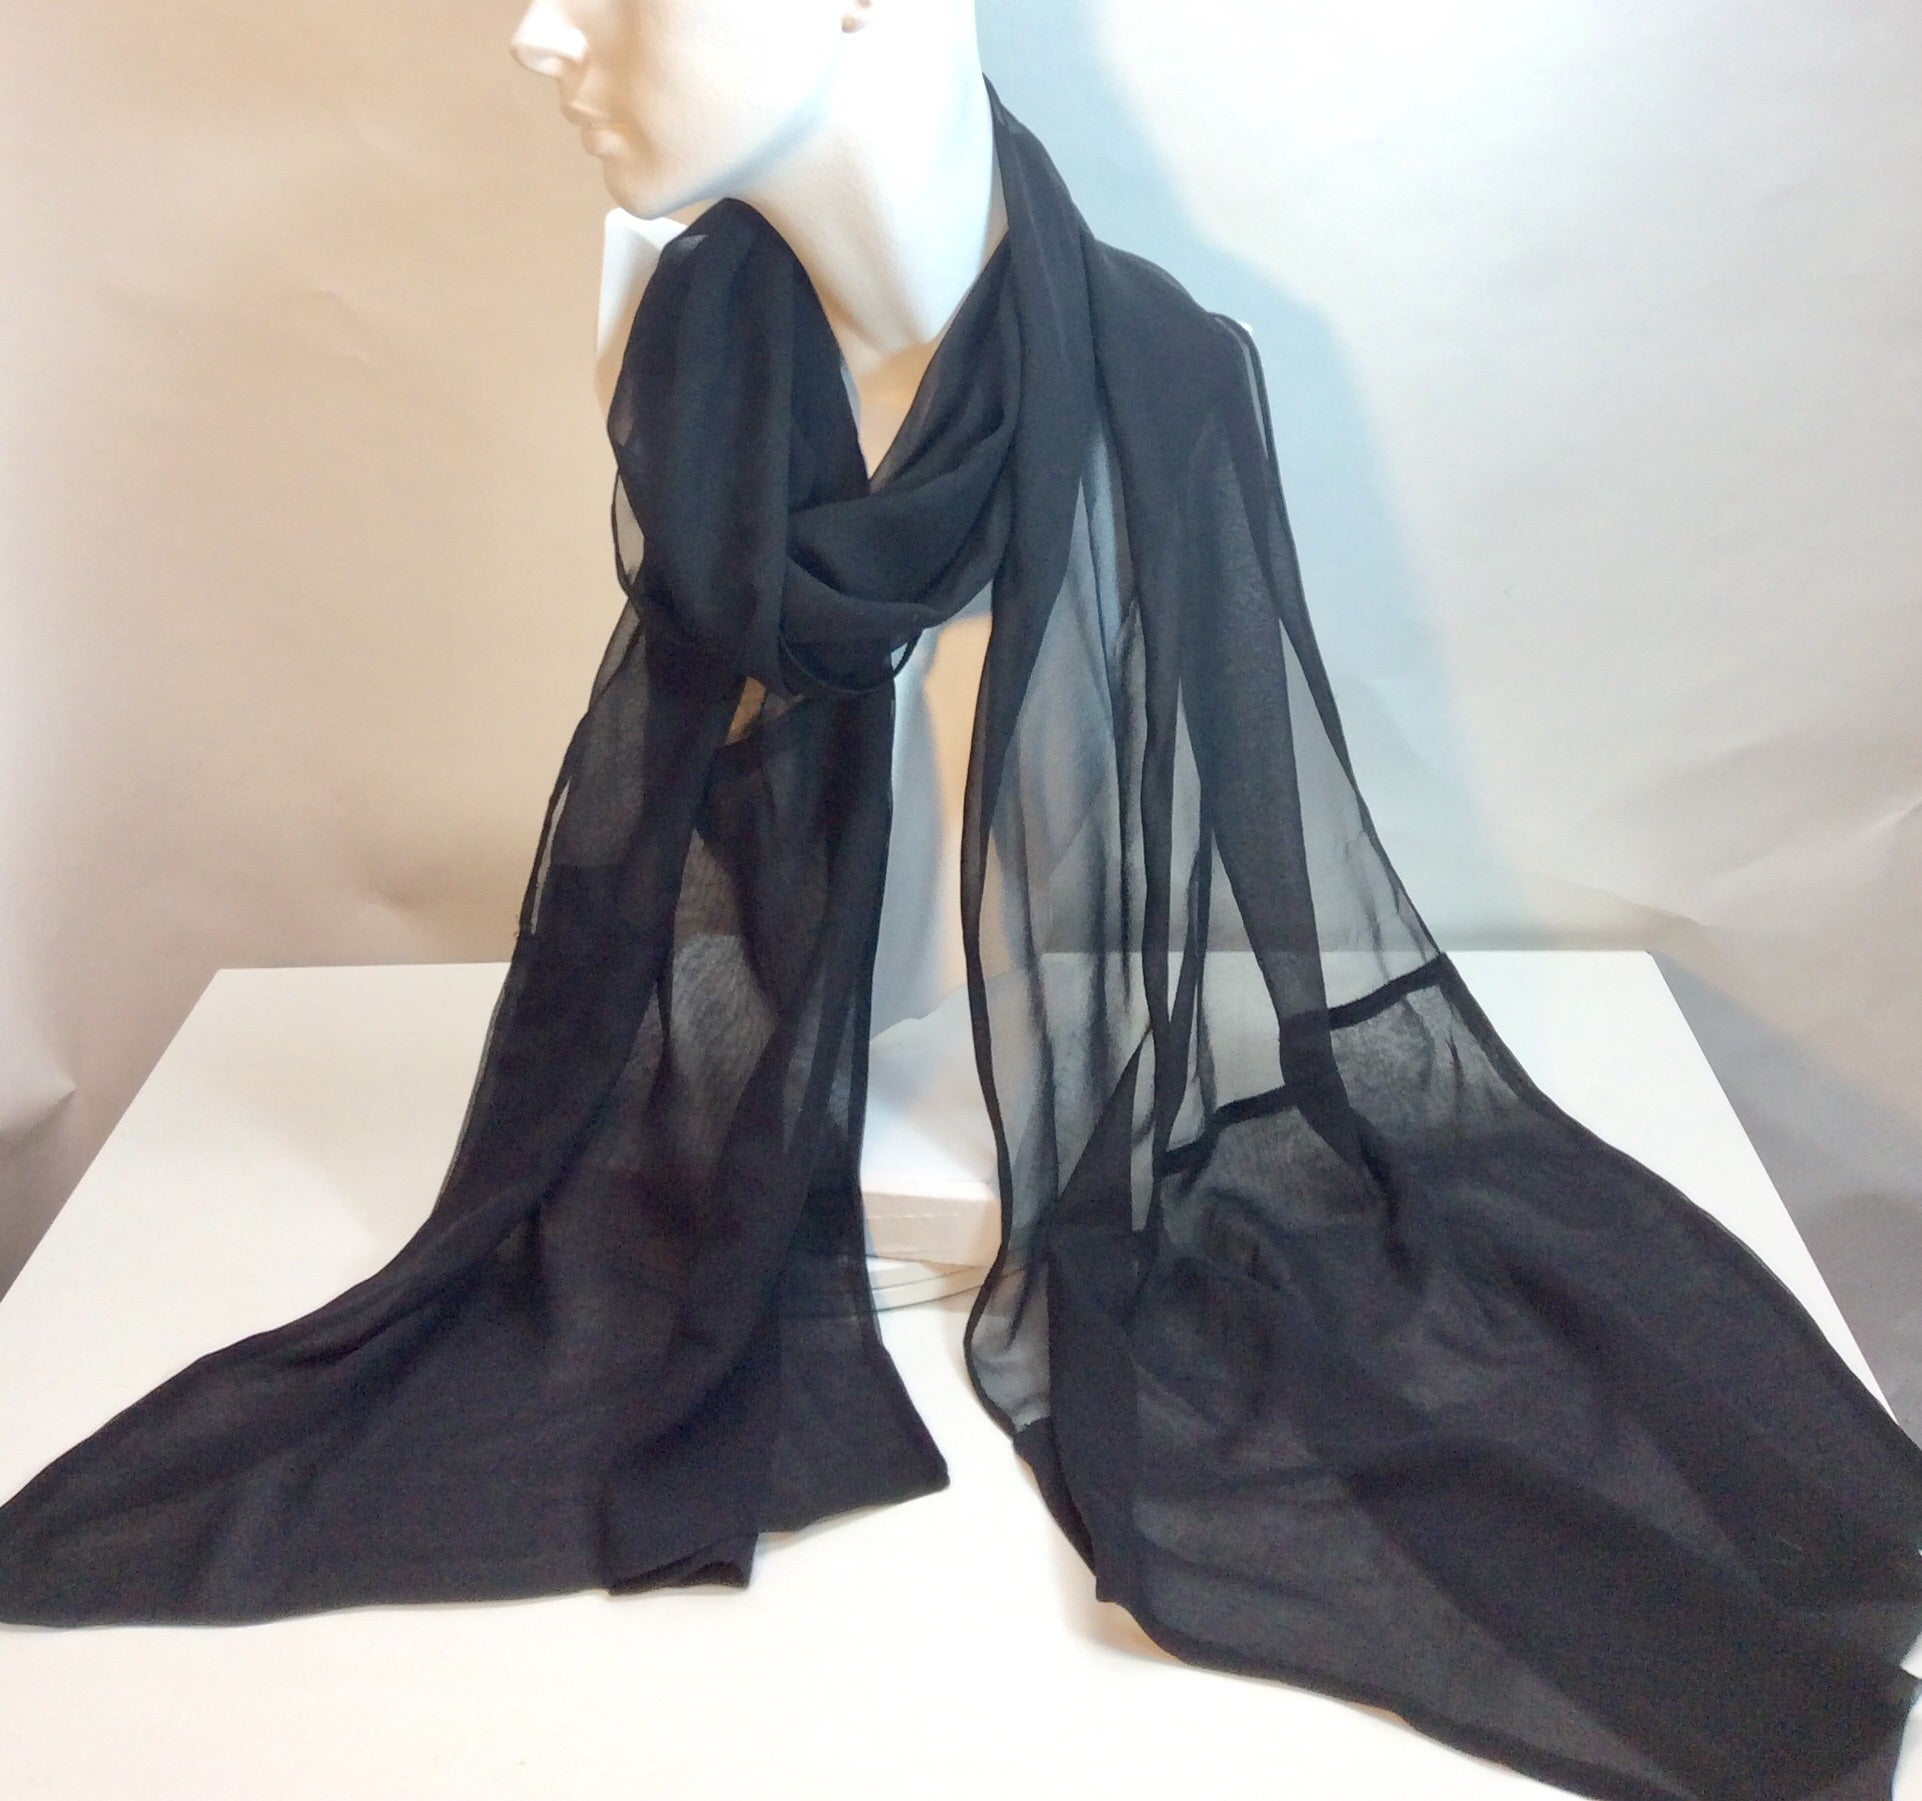 Plain black silk evening scarf with doubled ends